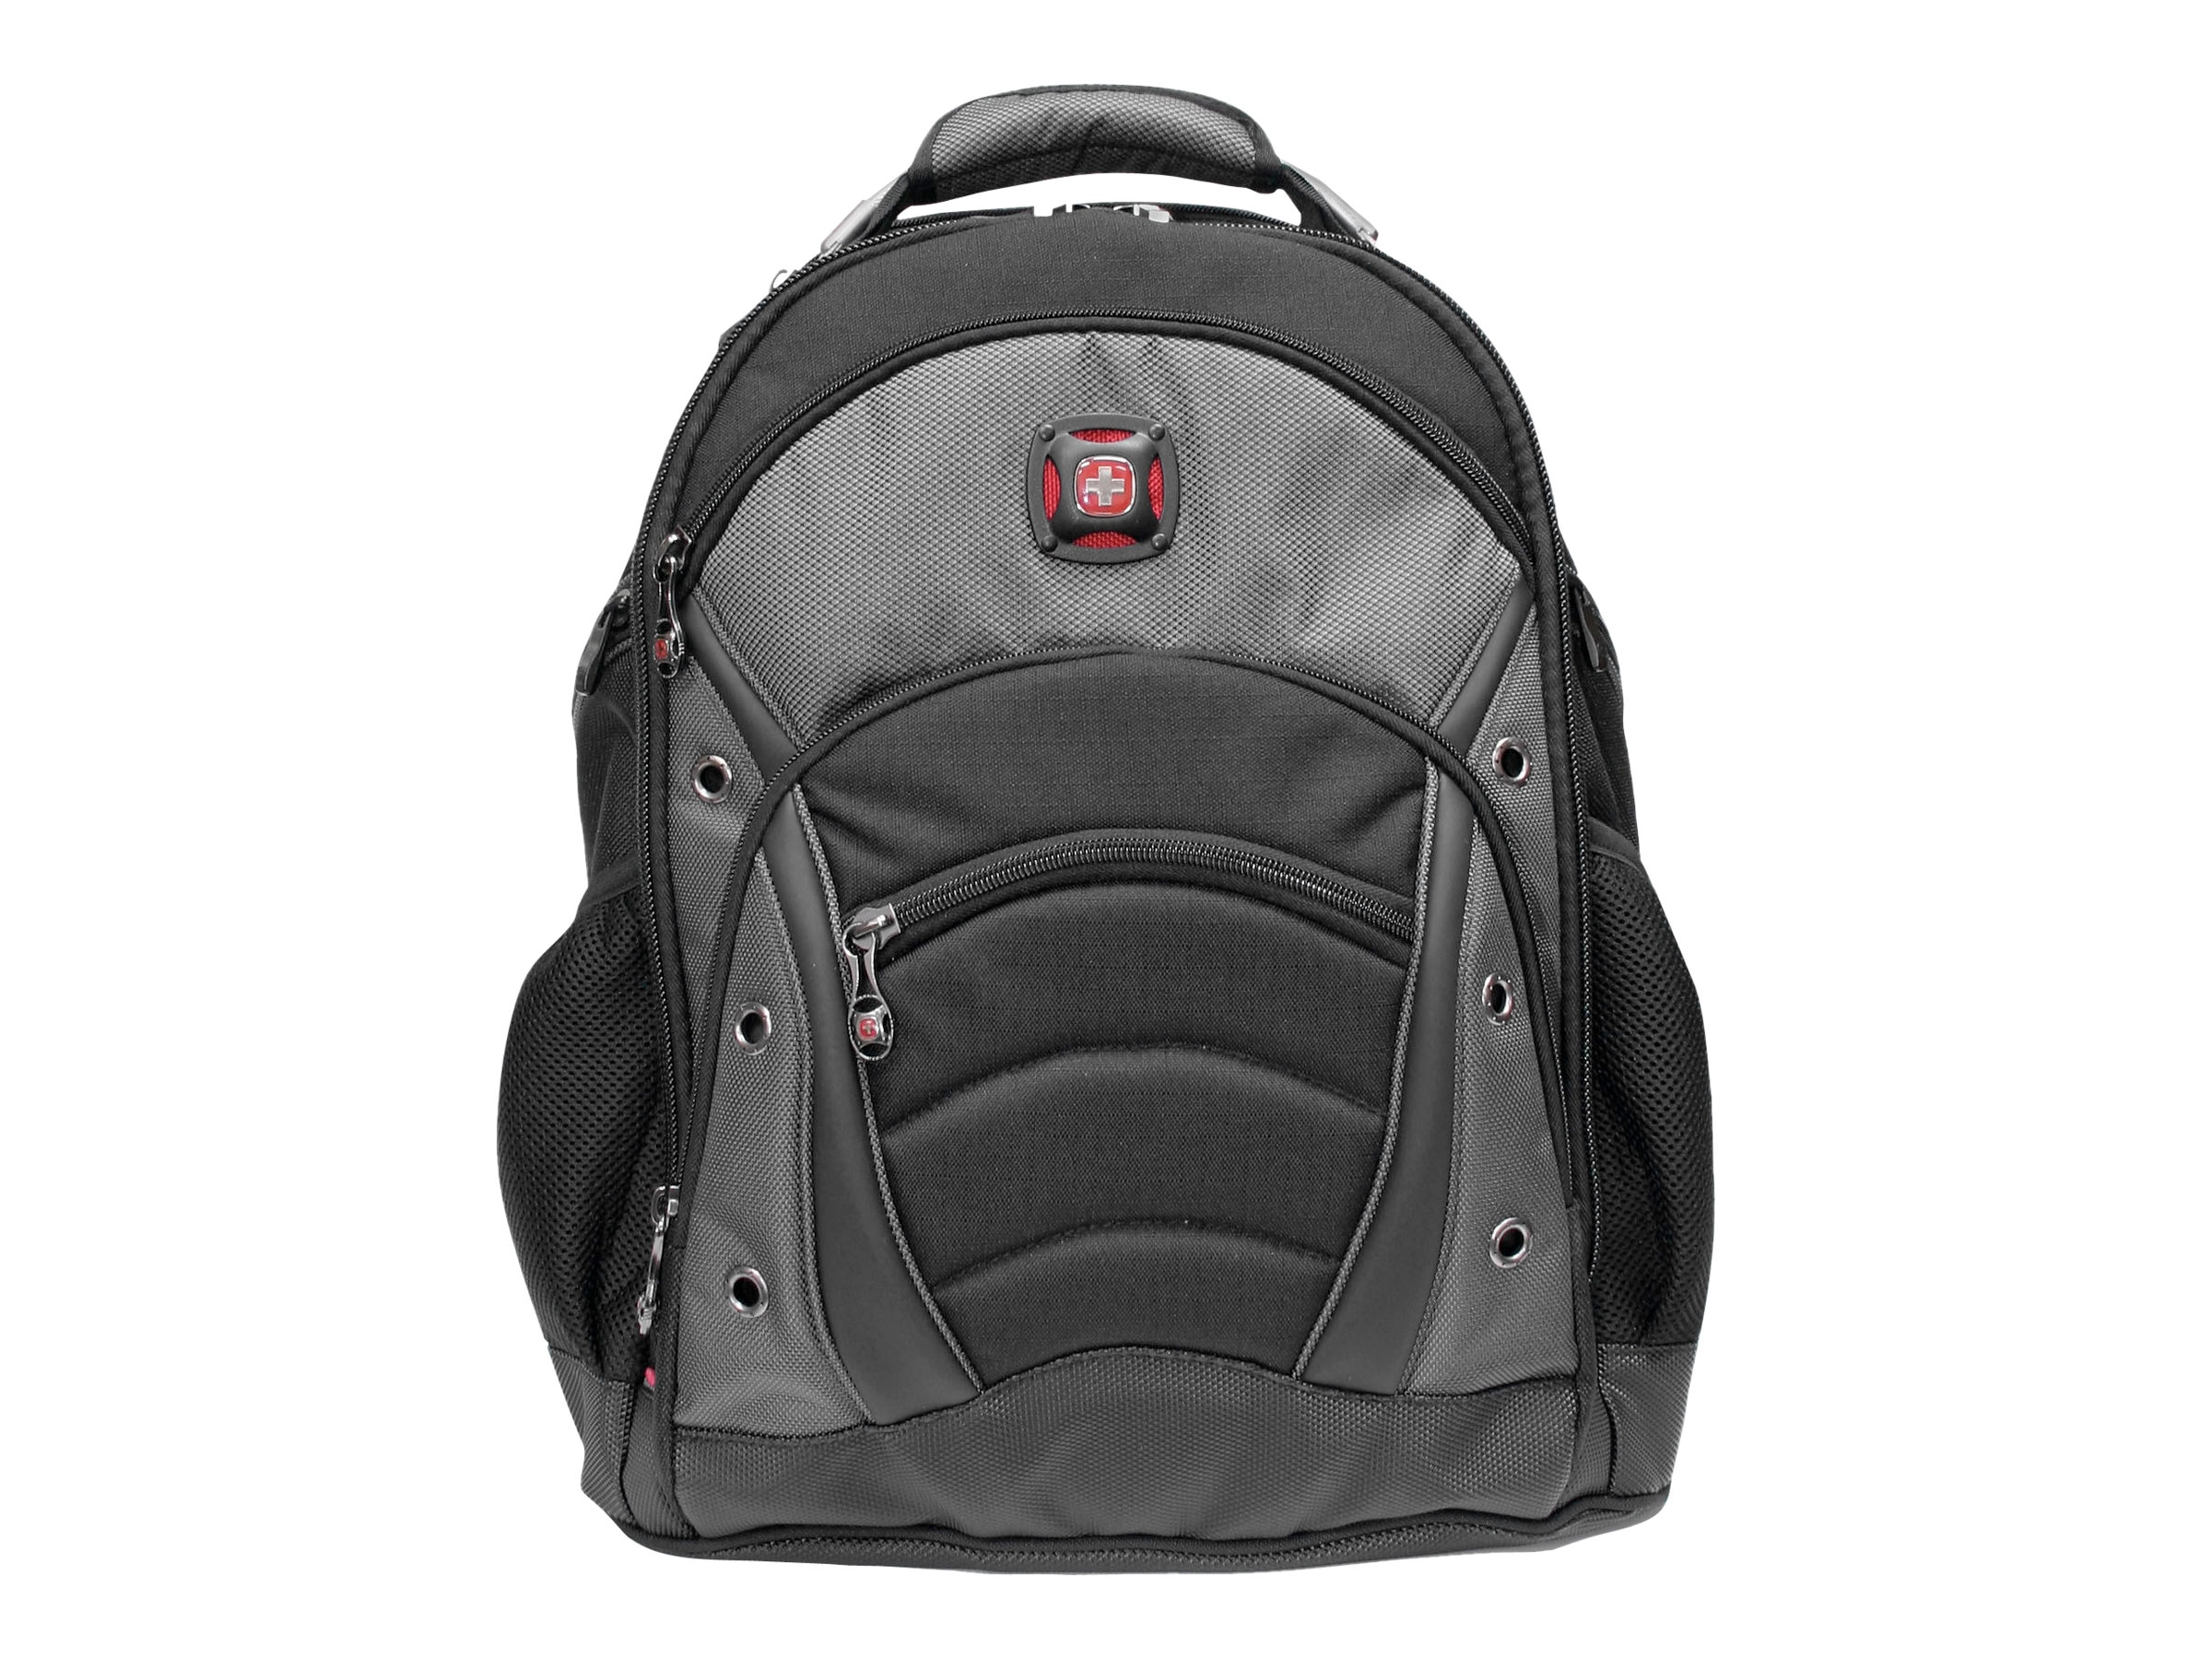 Wenger Swiss Army Synergy Backpack, Poly Nylon, Gray, Fits Most 15.6 Screens